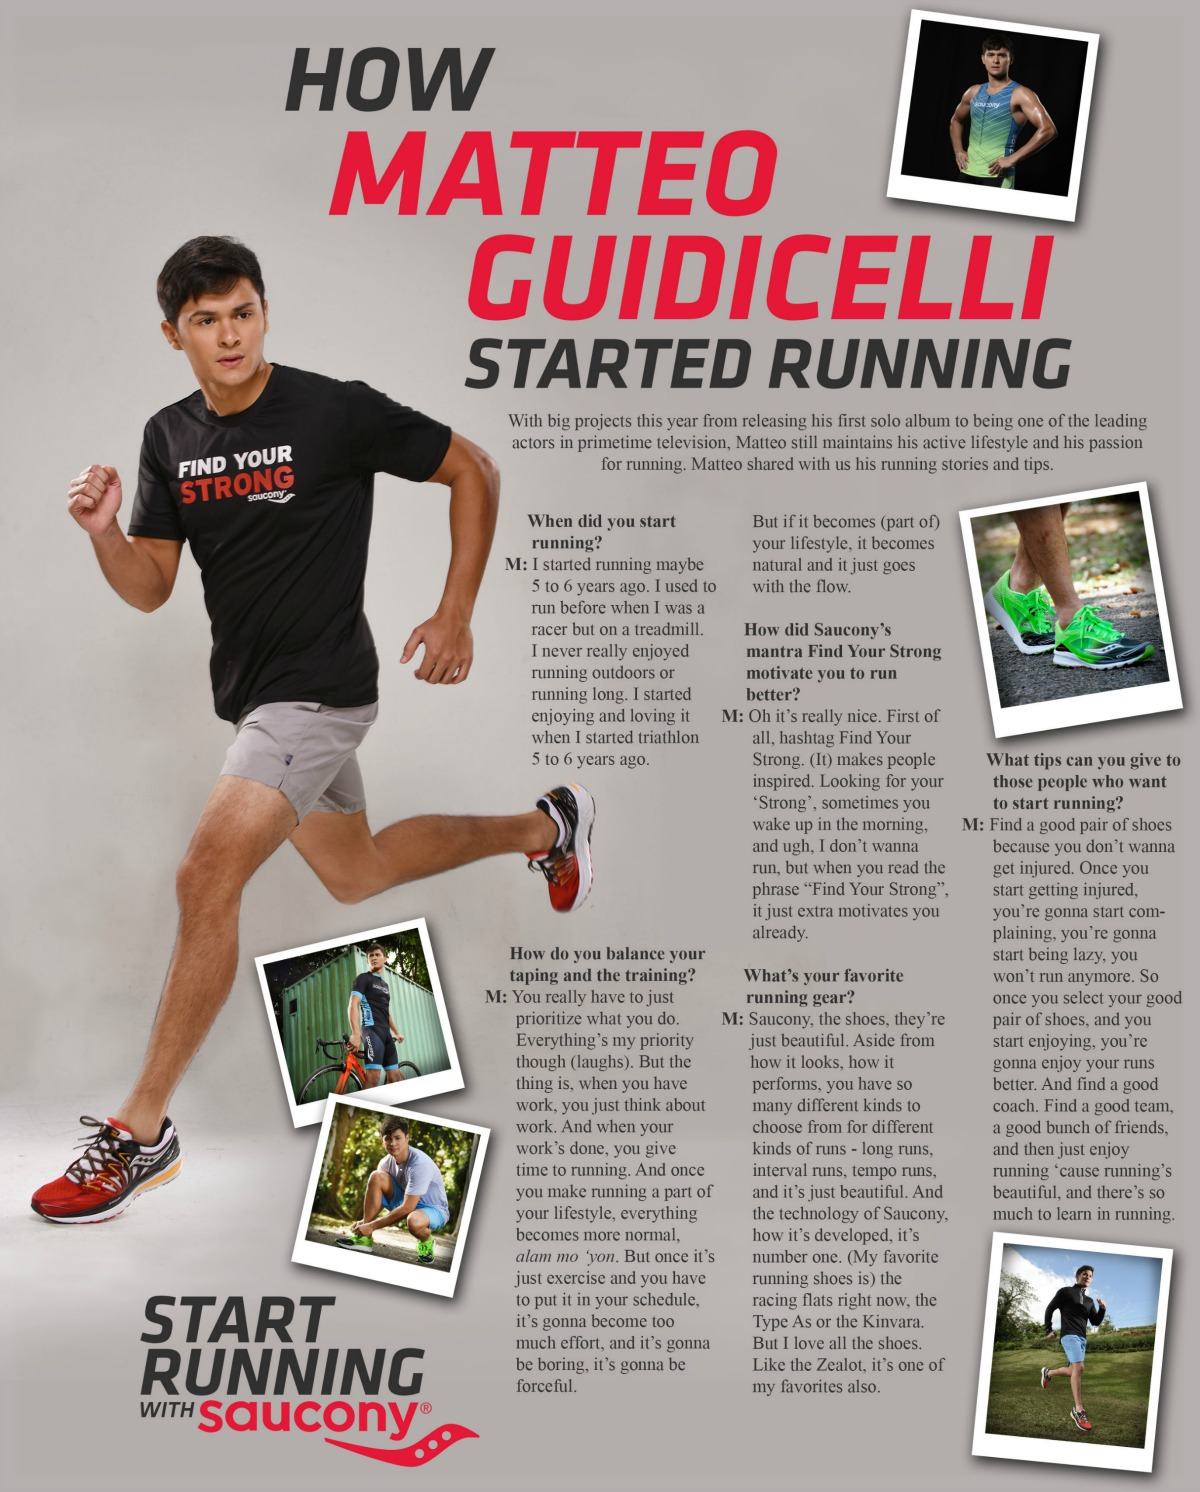 Saucony - How Matteo Guidicelli Started Running 2